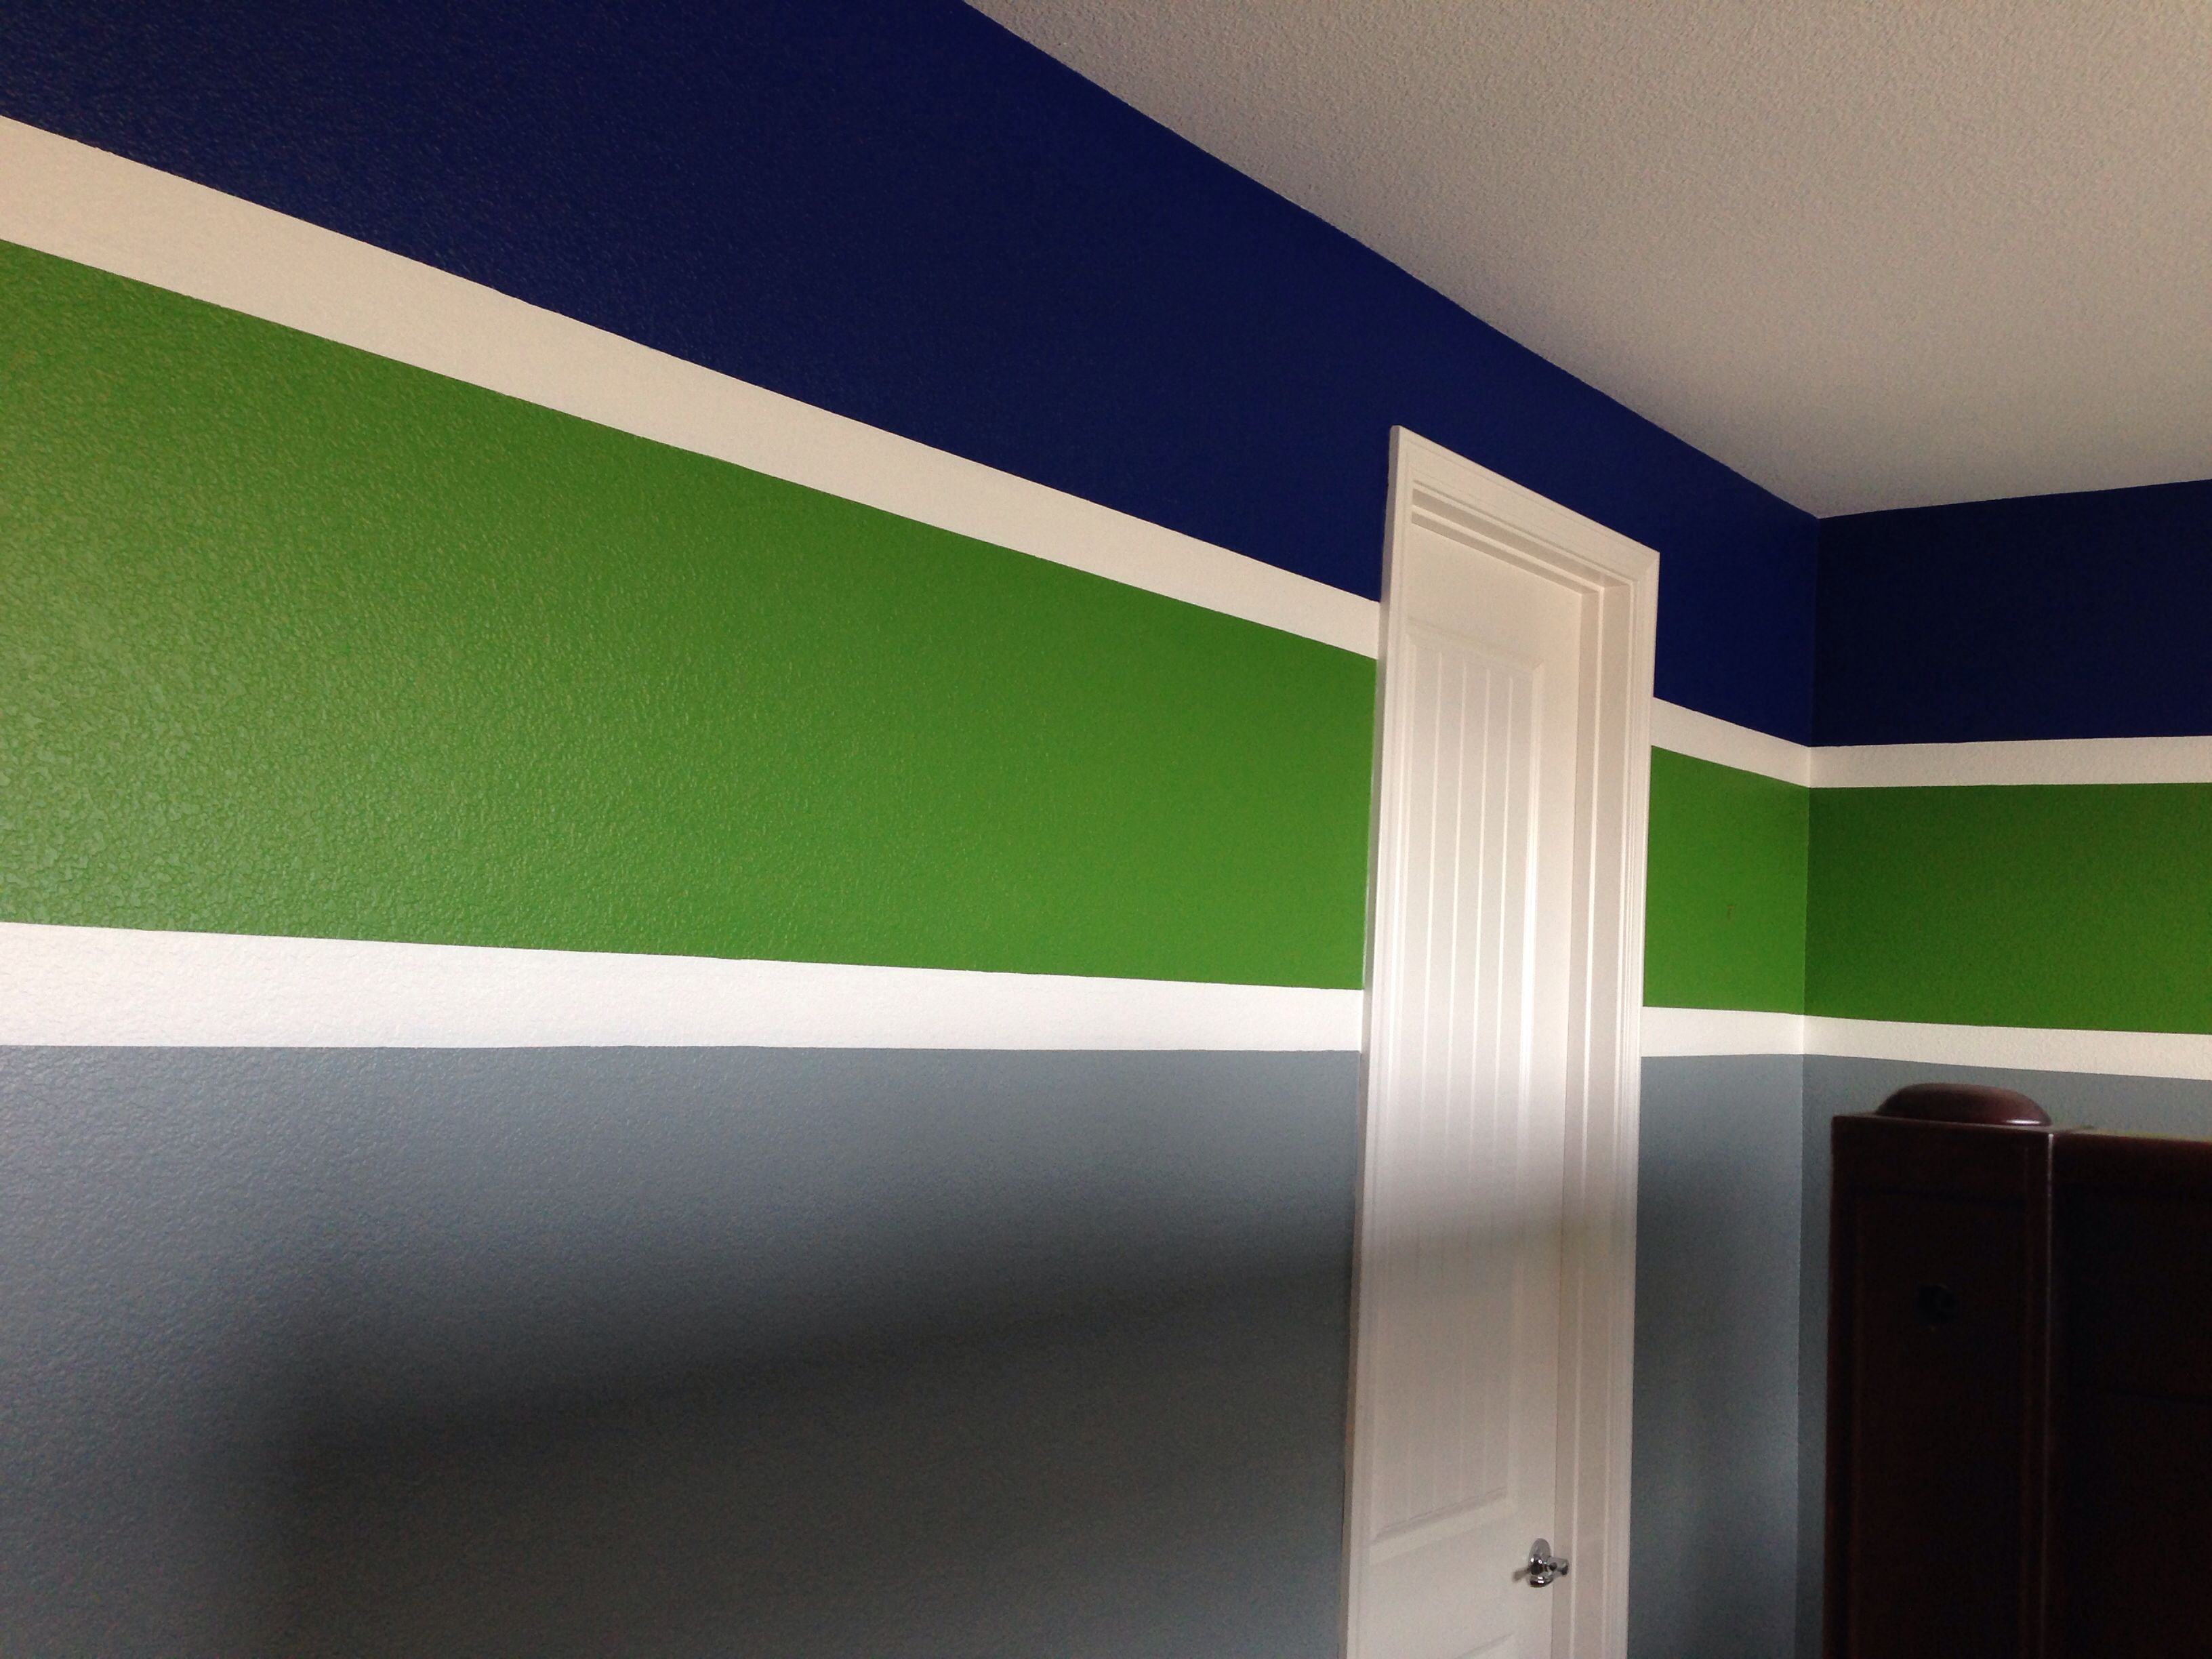 Bedroom paint ideas for boys - Boy Room Paint Colors